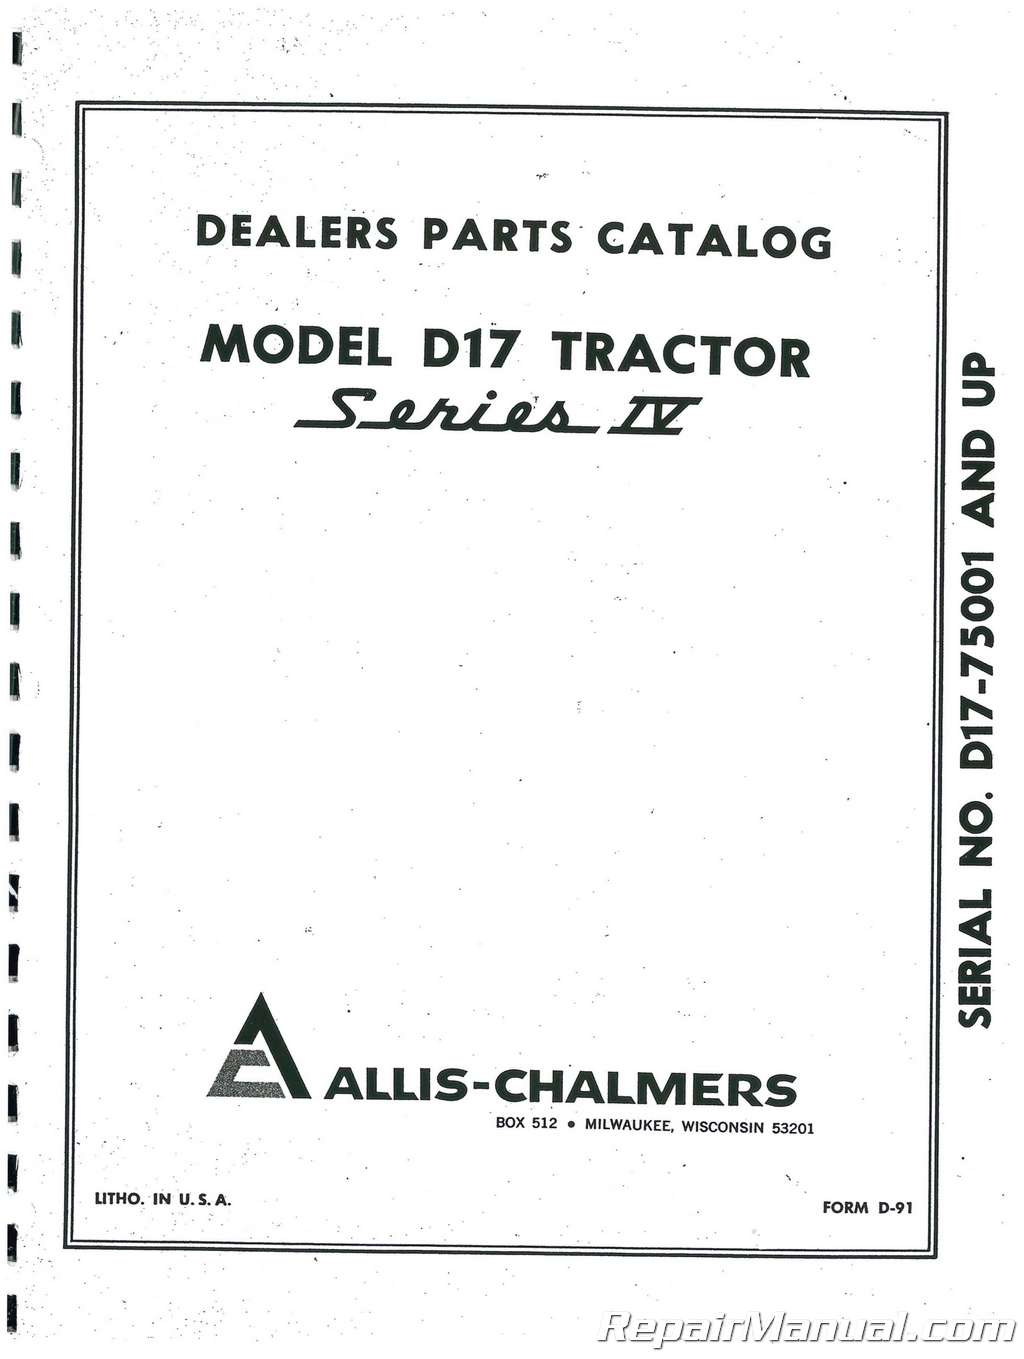 Allis Chalmers D-17 Series IV Parts Manual